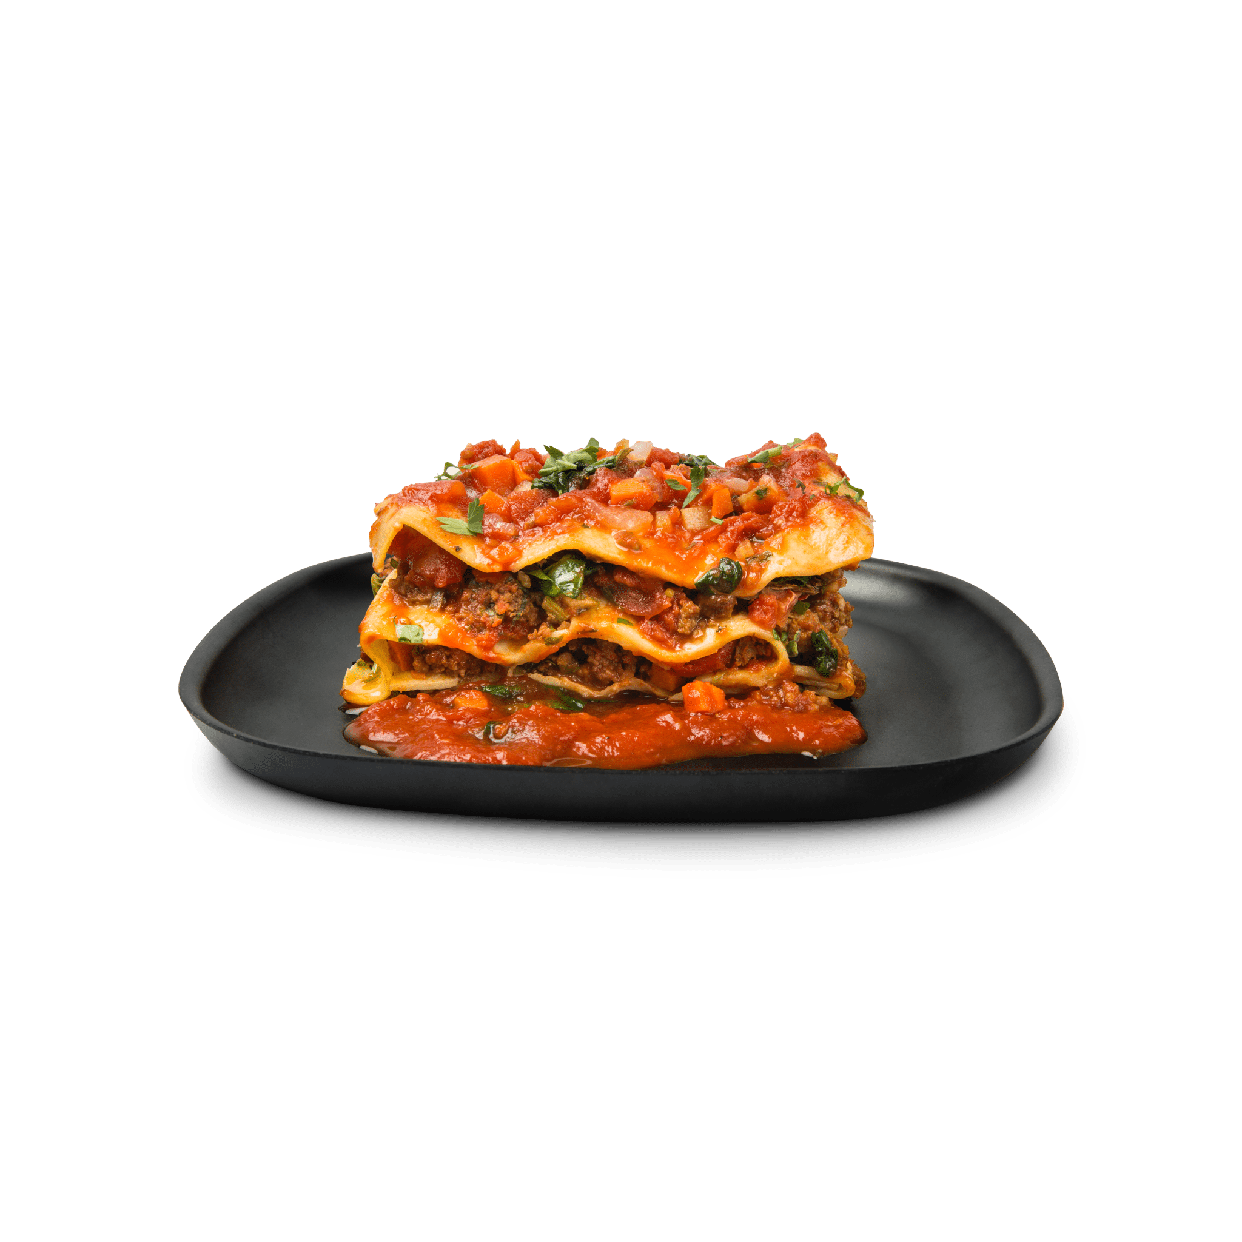 grass-fed beef lasagna